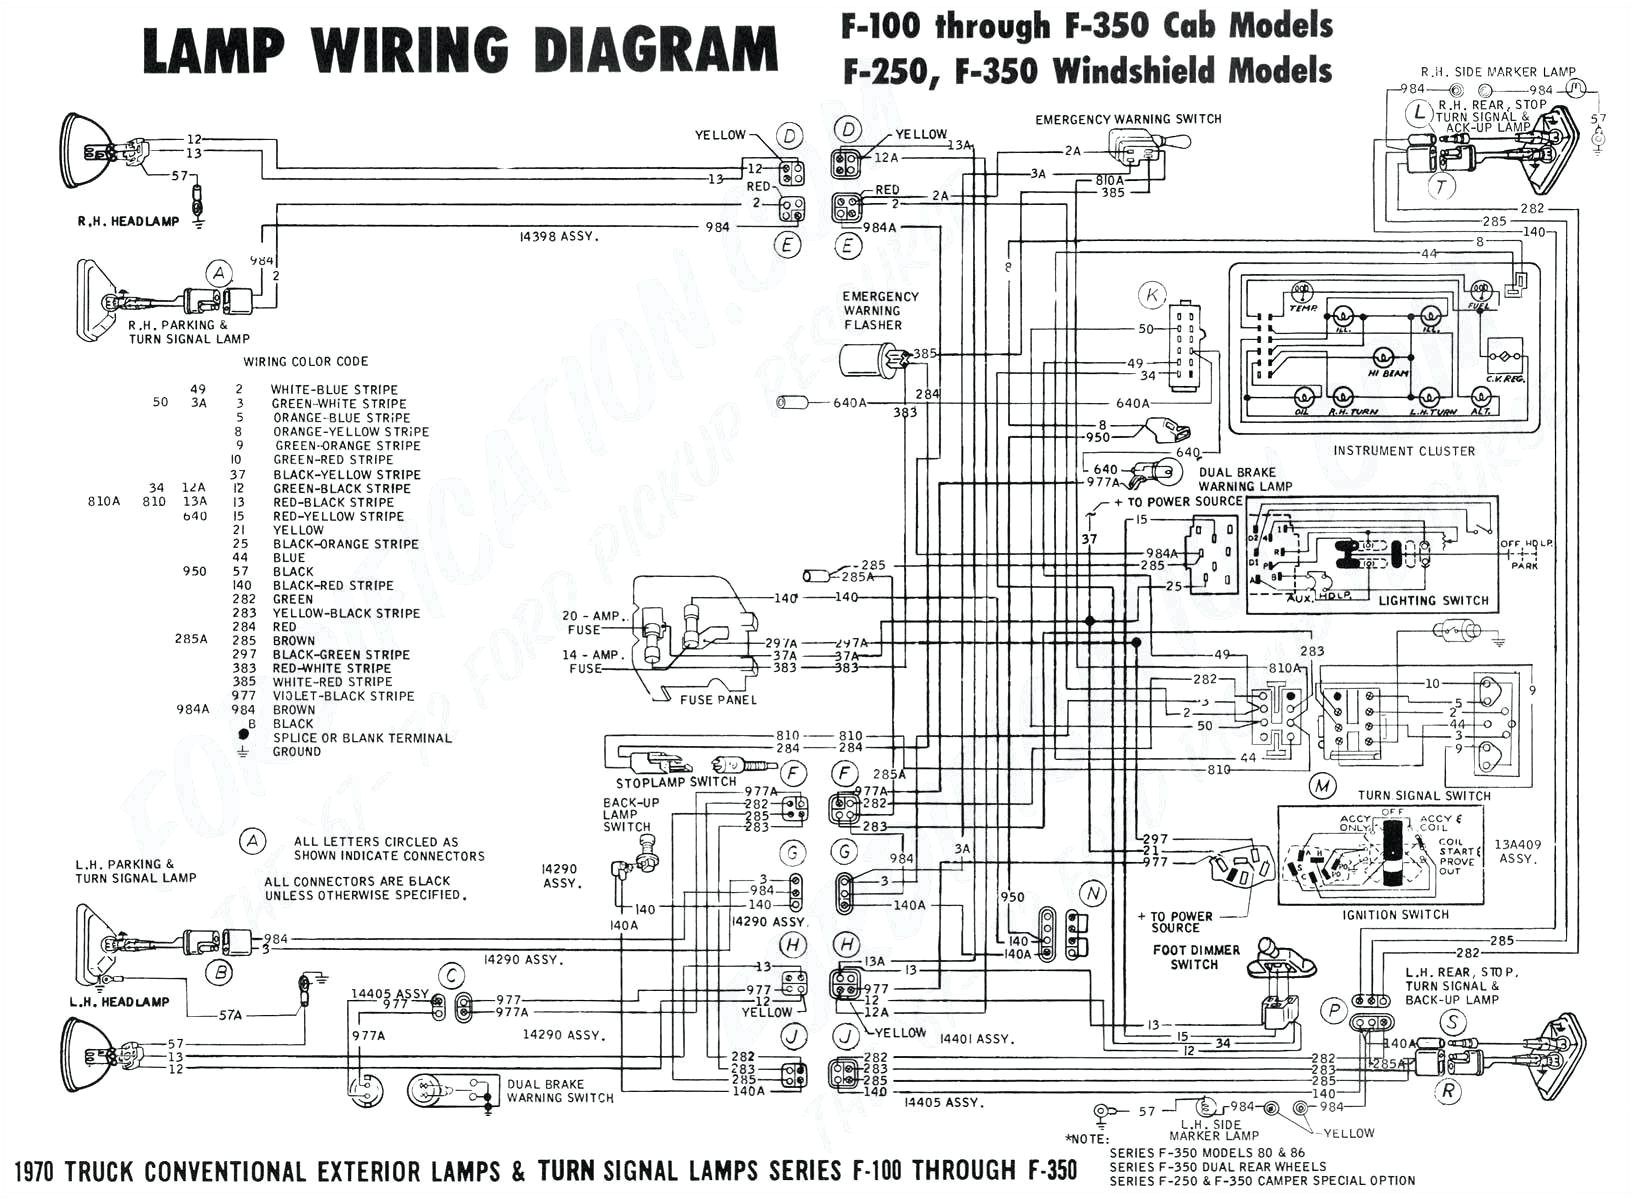 2000 ford explorer fuse relay diagrams caroldoey blog wiring diagram ford explorer 2004 ford explorer trailer wiring caroldoey